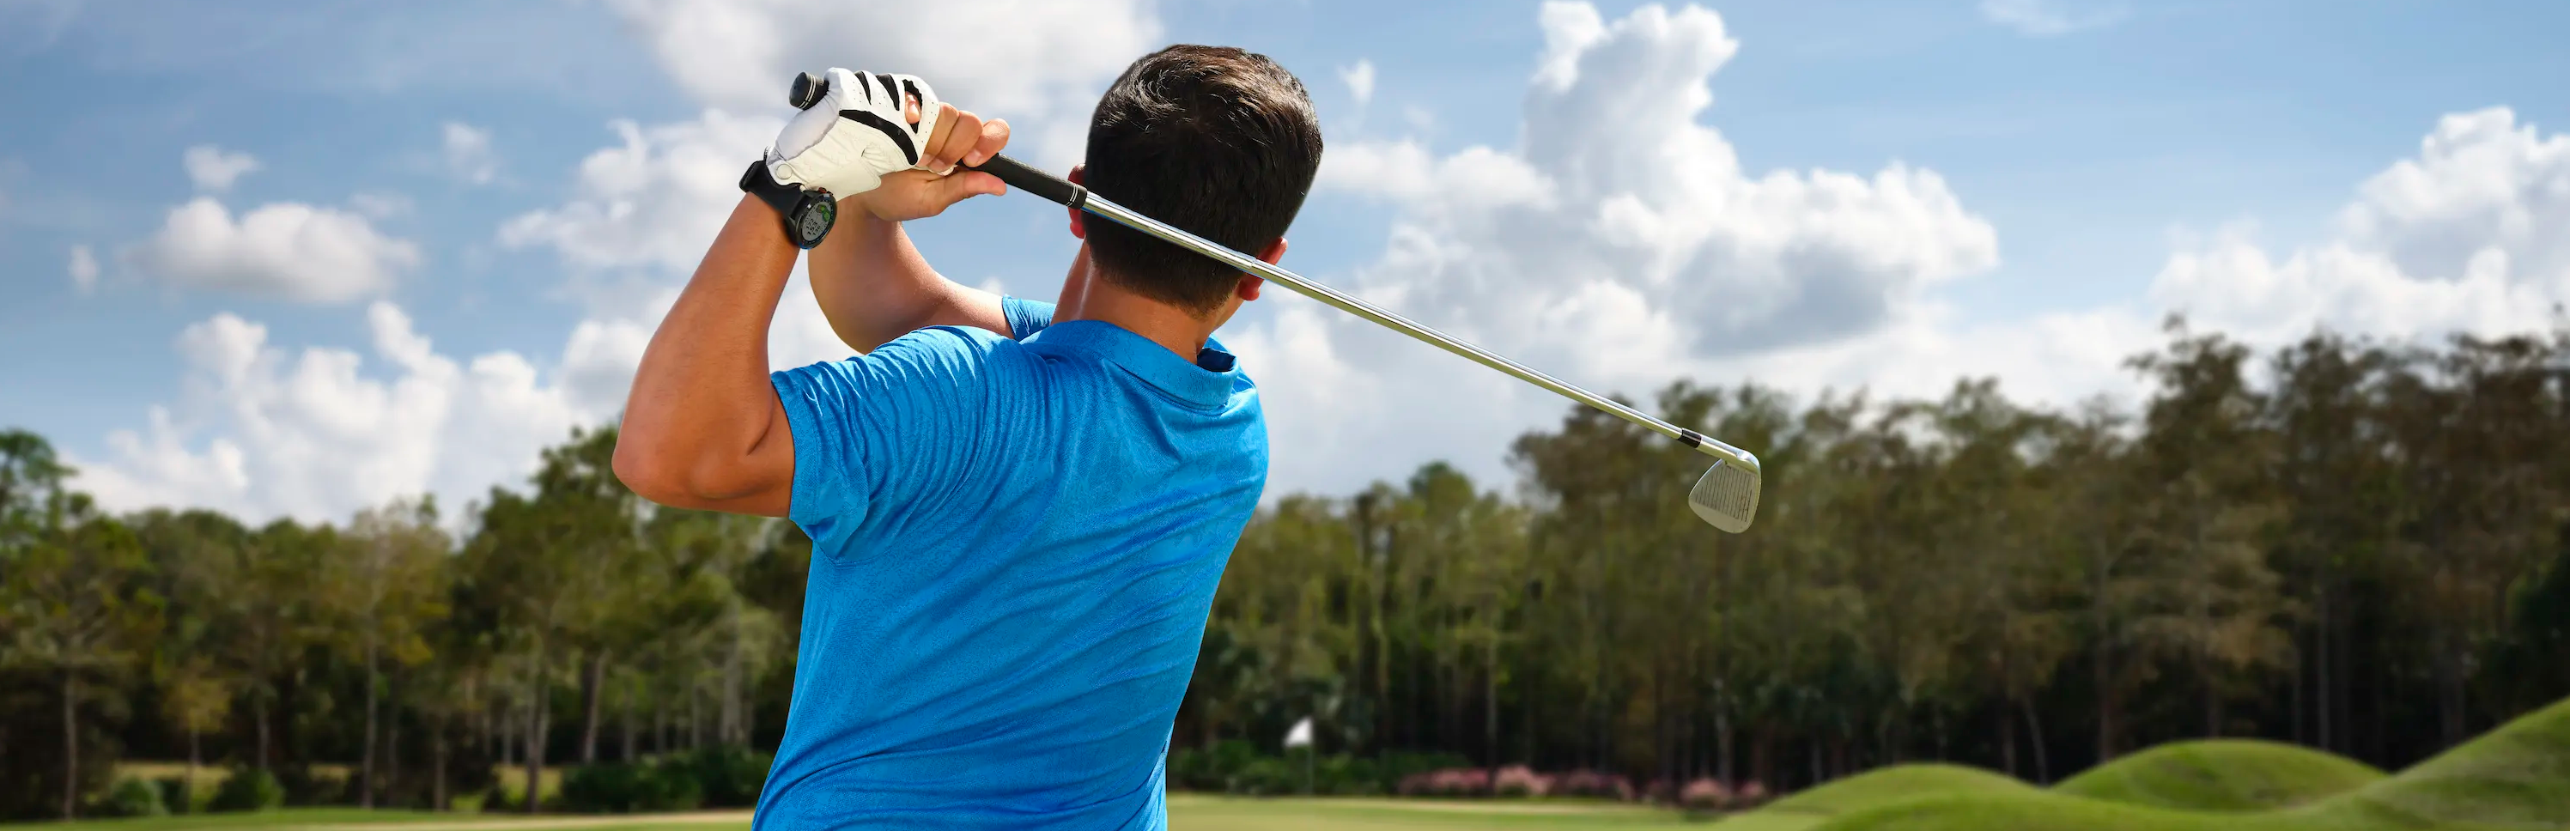 Golfer swinging on the course